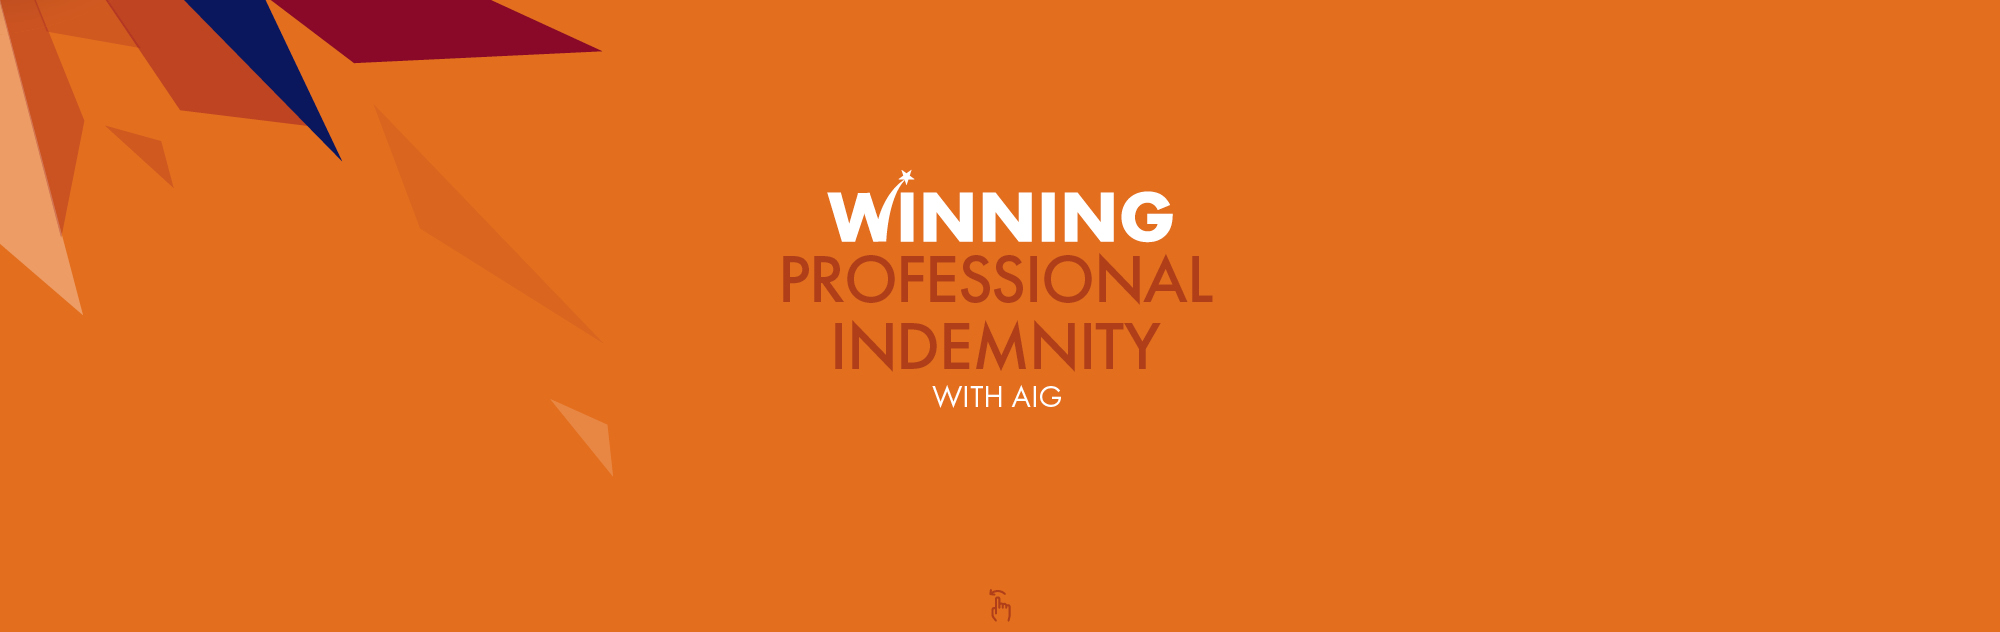 winning professional indemnity